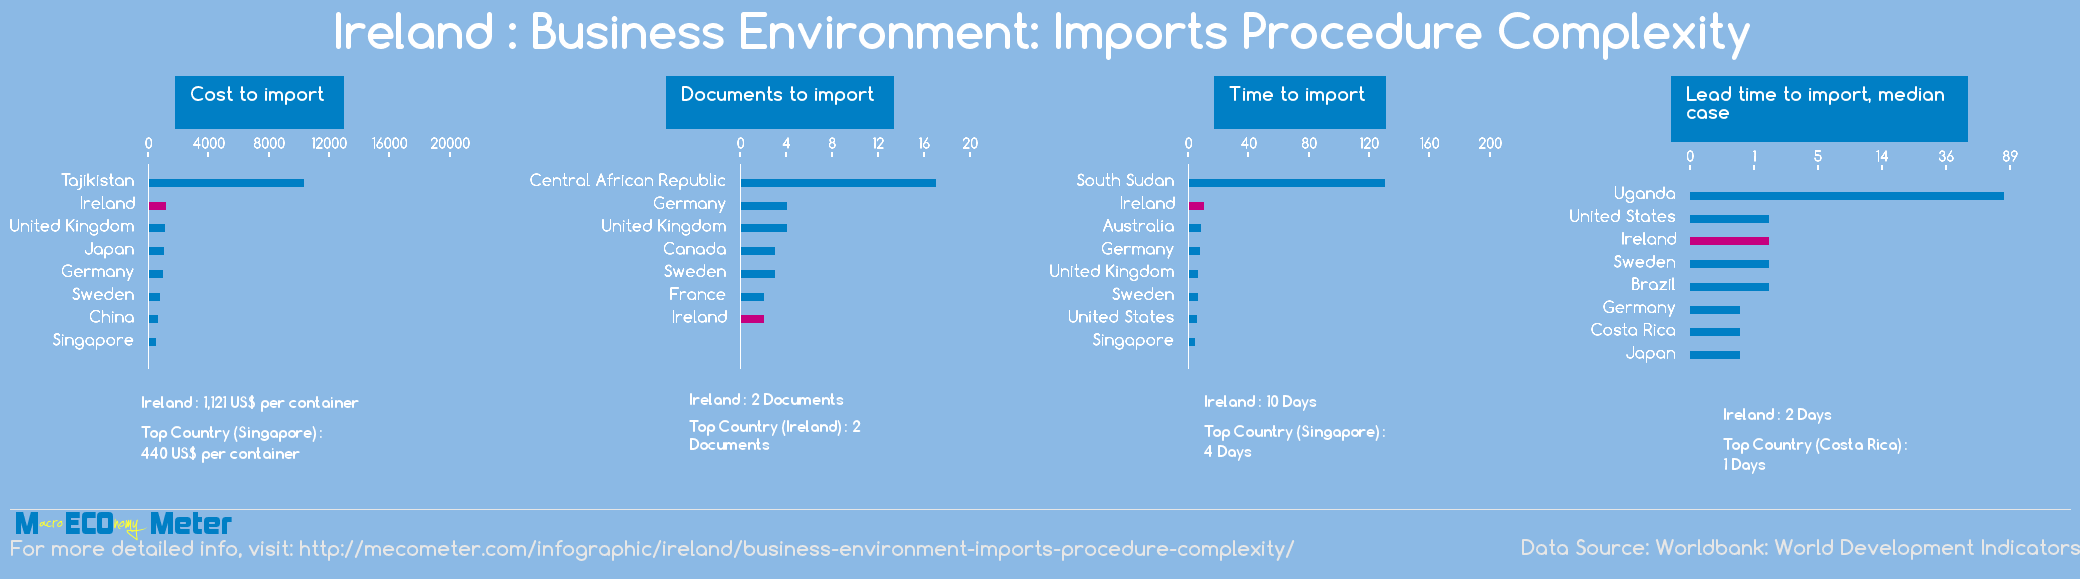 Ireland : Business Environment: Imports Procedure Complexity